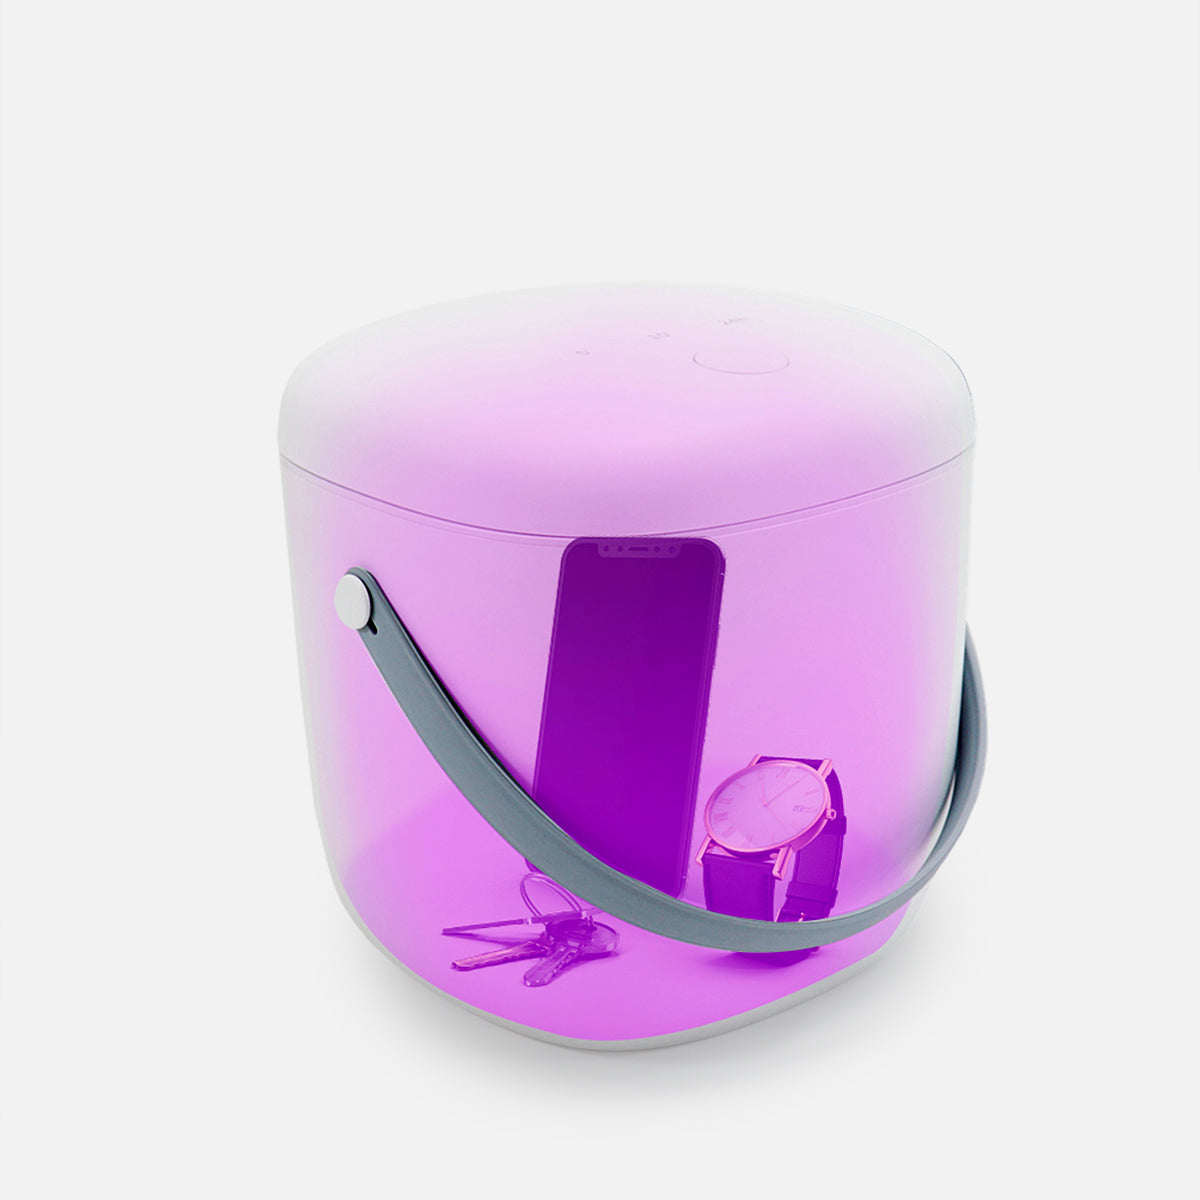 UV Sanitiser Home